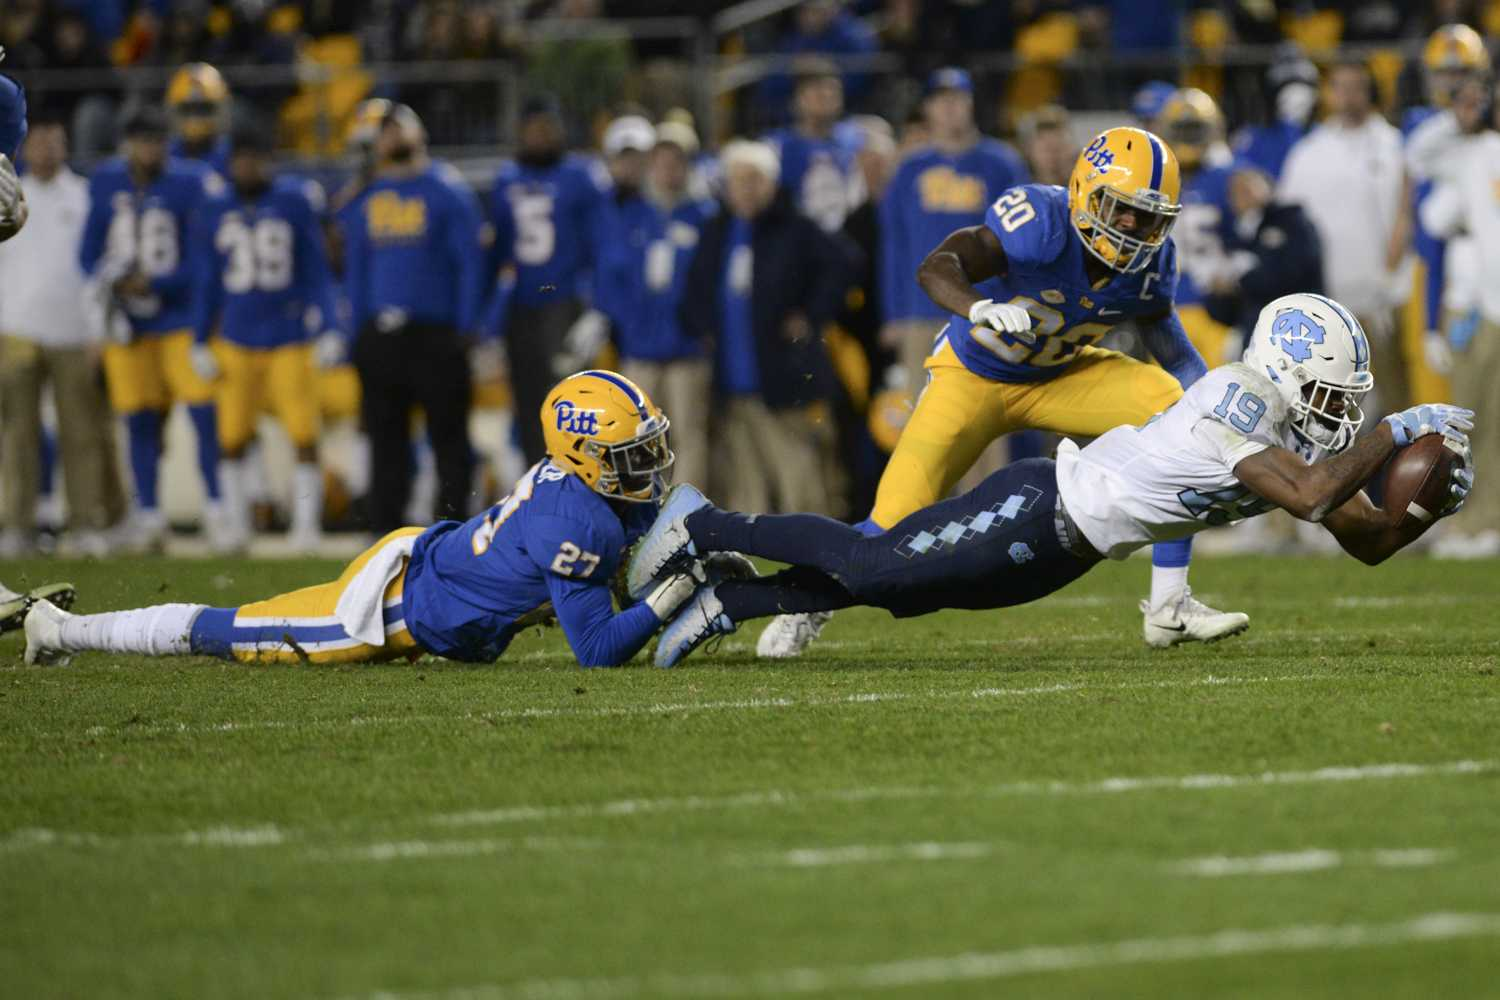 Pitt's Bricen Garner makes a shoelace tackle in the second half. (Photo by Christian Snyder / Contributing Editor)